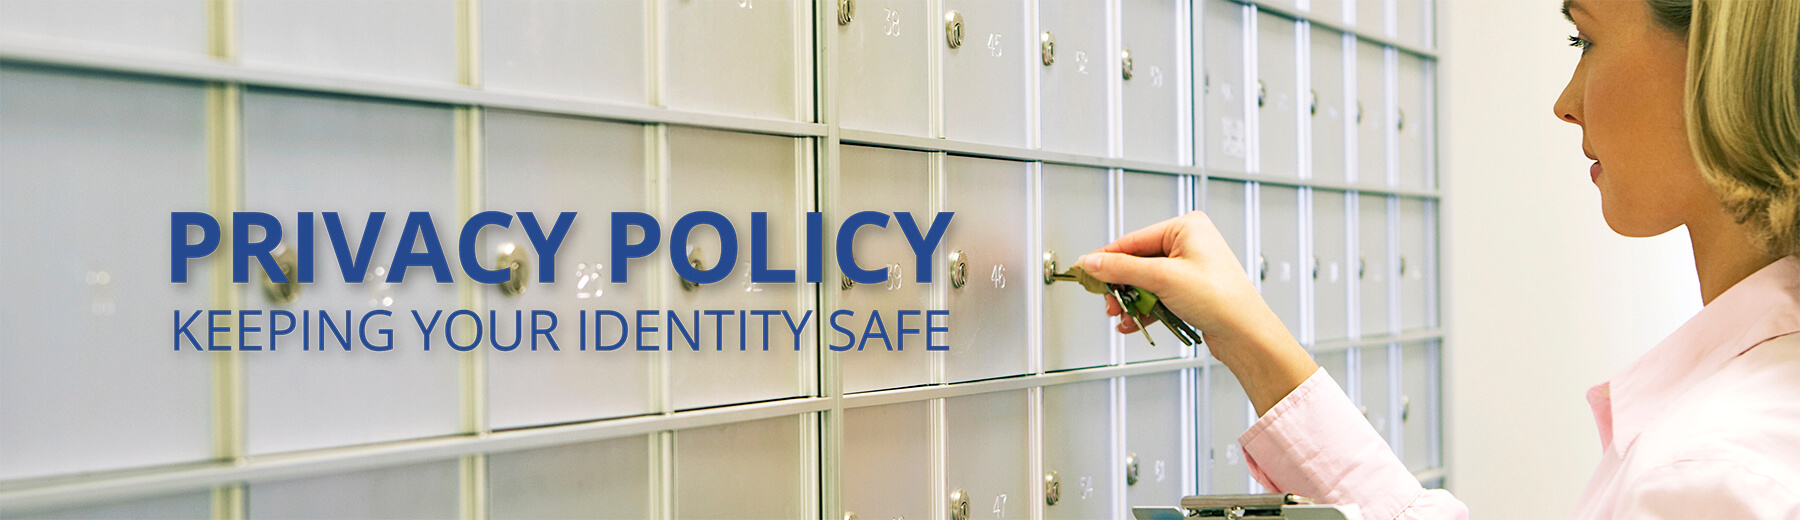 privacy policy lorex